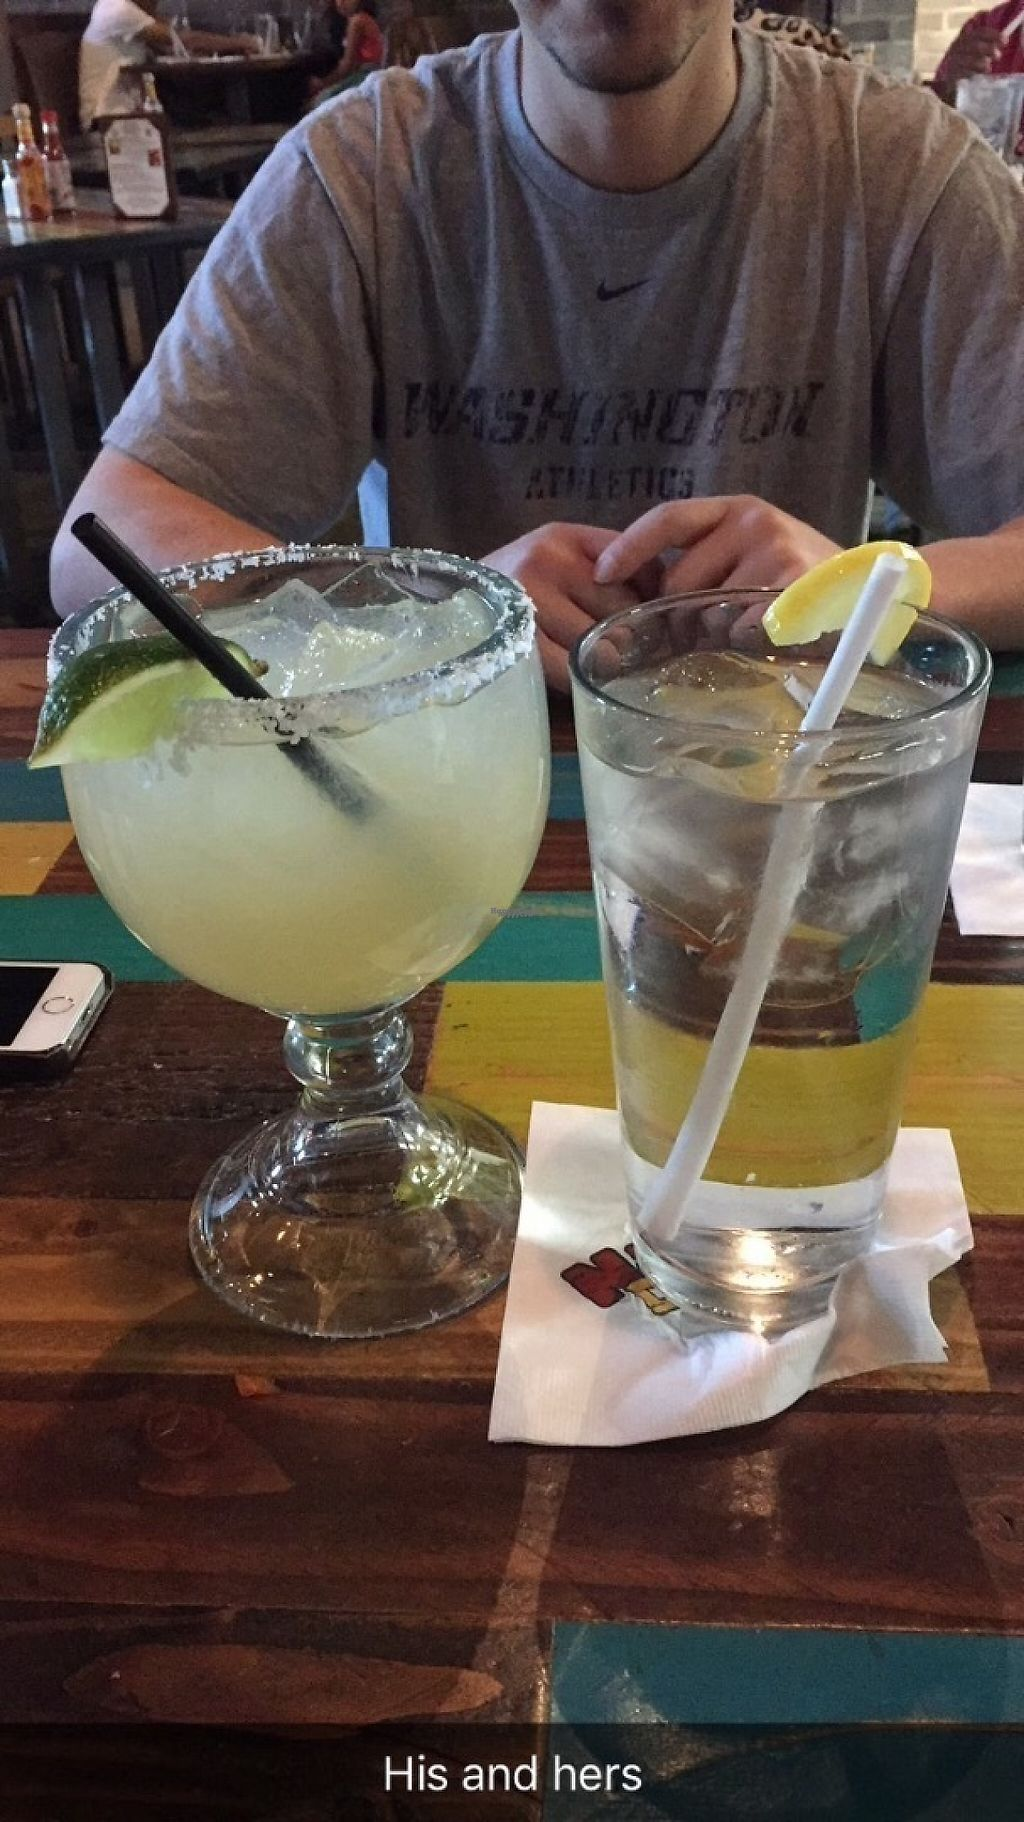 """Photo of Nacho Daddy  by <a href=""""/members/profile/AshleighWhitworth"""">AshleighWhitworth</a> <br/>Margaritas... one could argue the claim on """"the best"""" <br/> April 3, 2017  - <a href='/contact/abuse/image/43486/244351'>Report</a>"""